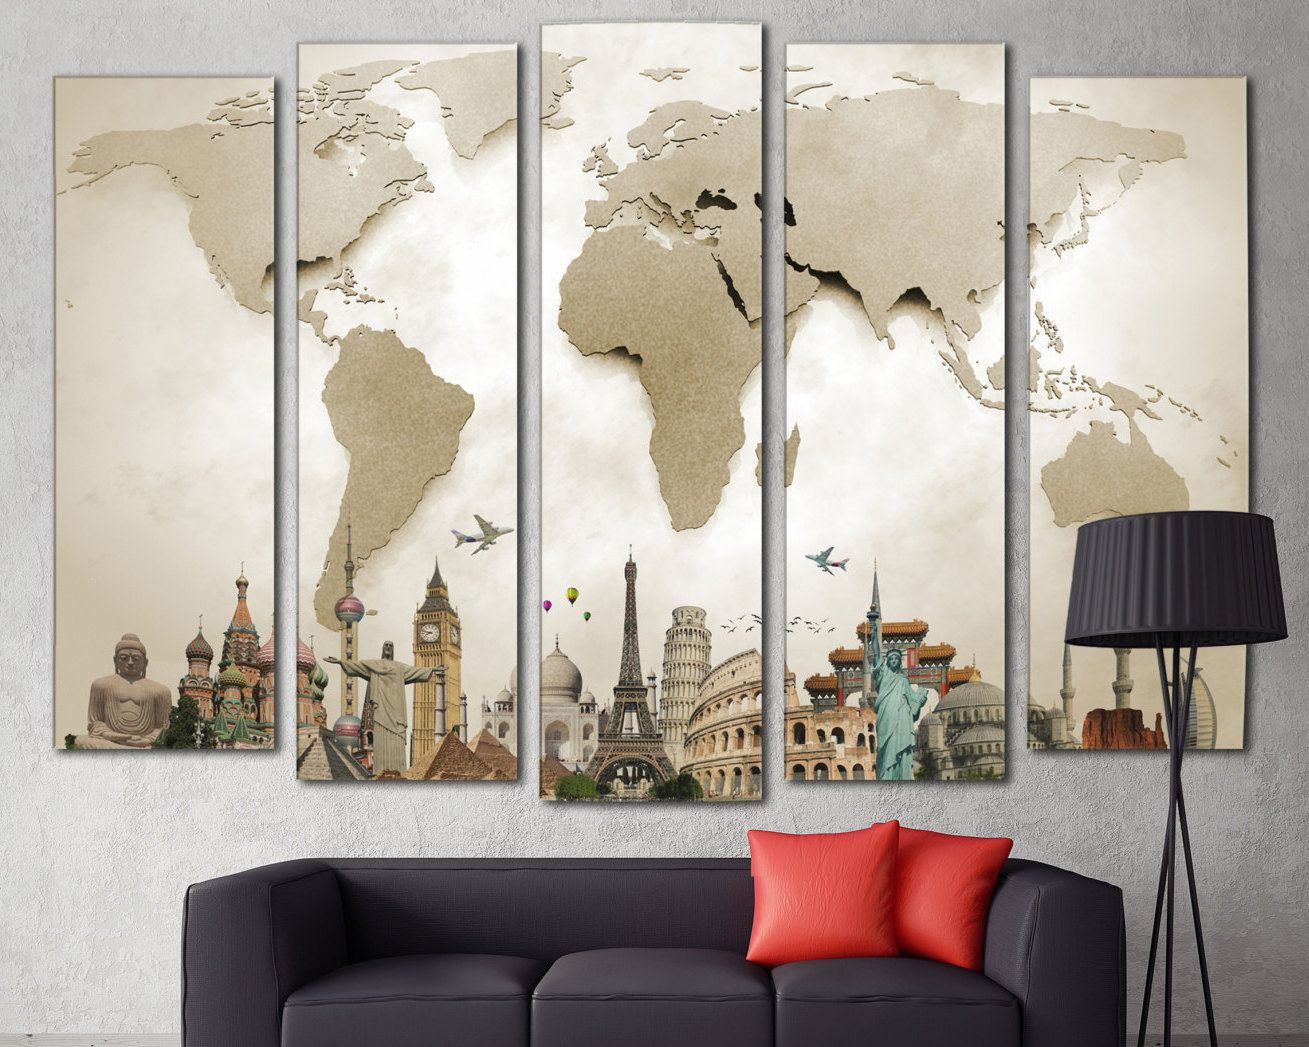 About this product world map print world map canvas world about this product world map print world map canvas world map wall art we use museum quality canvases to achieve archival grade wall art for your gumiabroncs Image collections